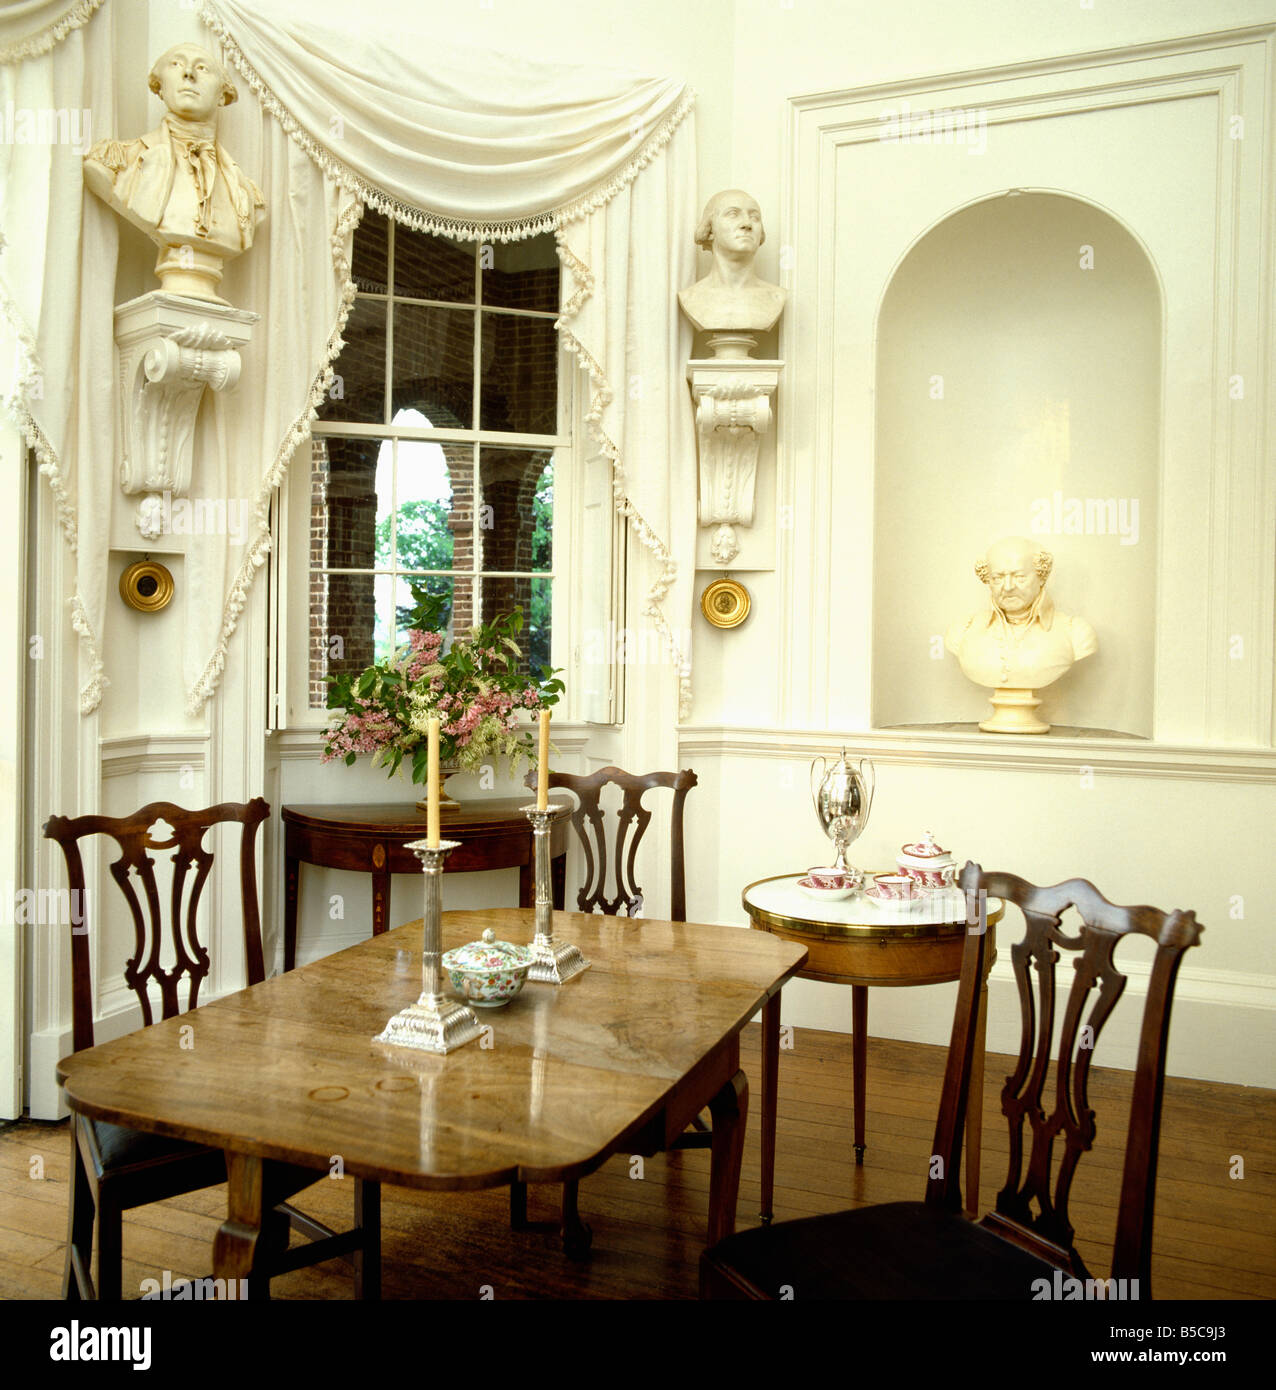 classical busts on corbels on either of window with cream drapes classical busts on corbels on either of window with cream drapes in cream dining room with alcove and antique furniture